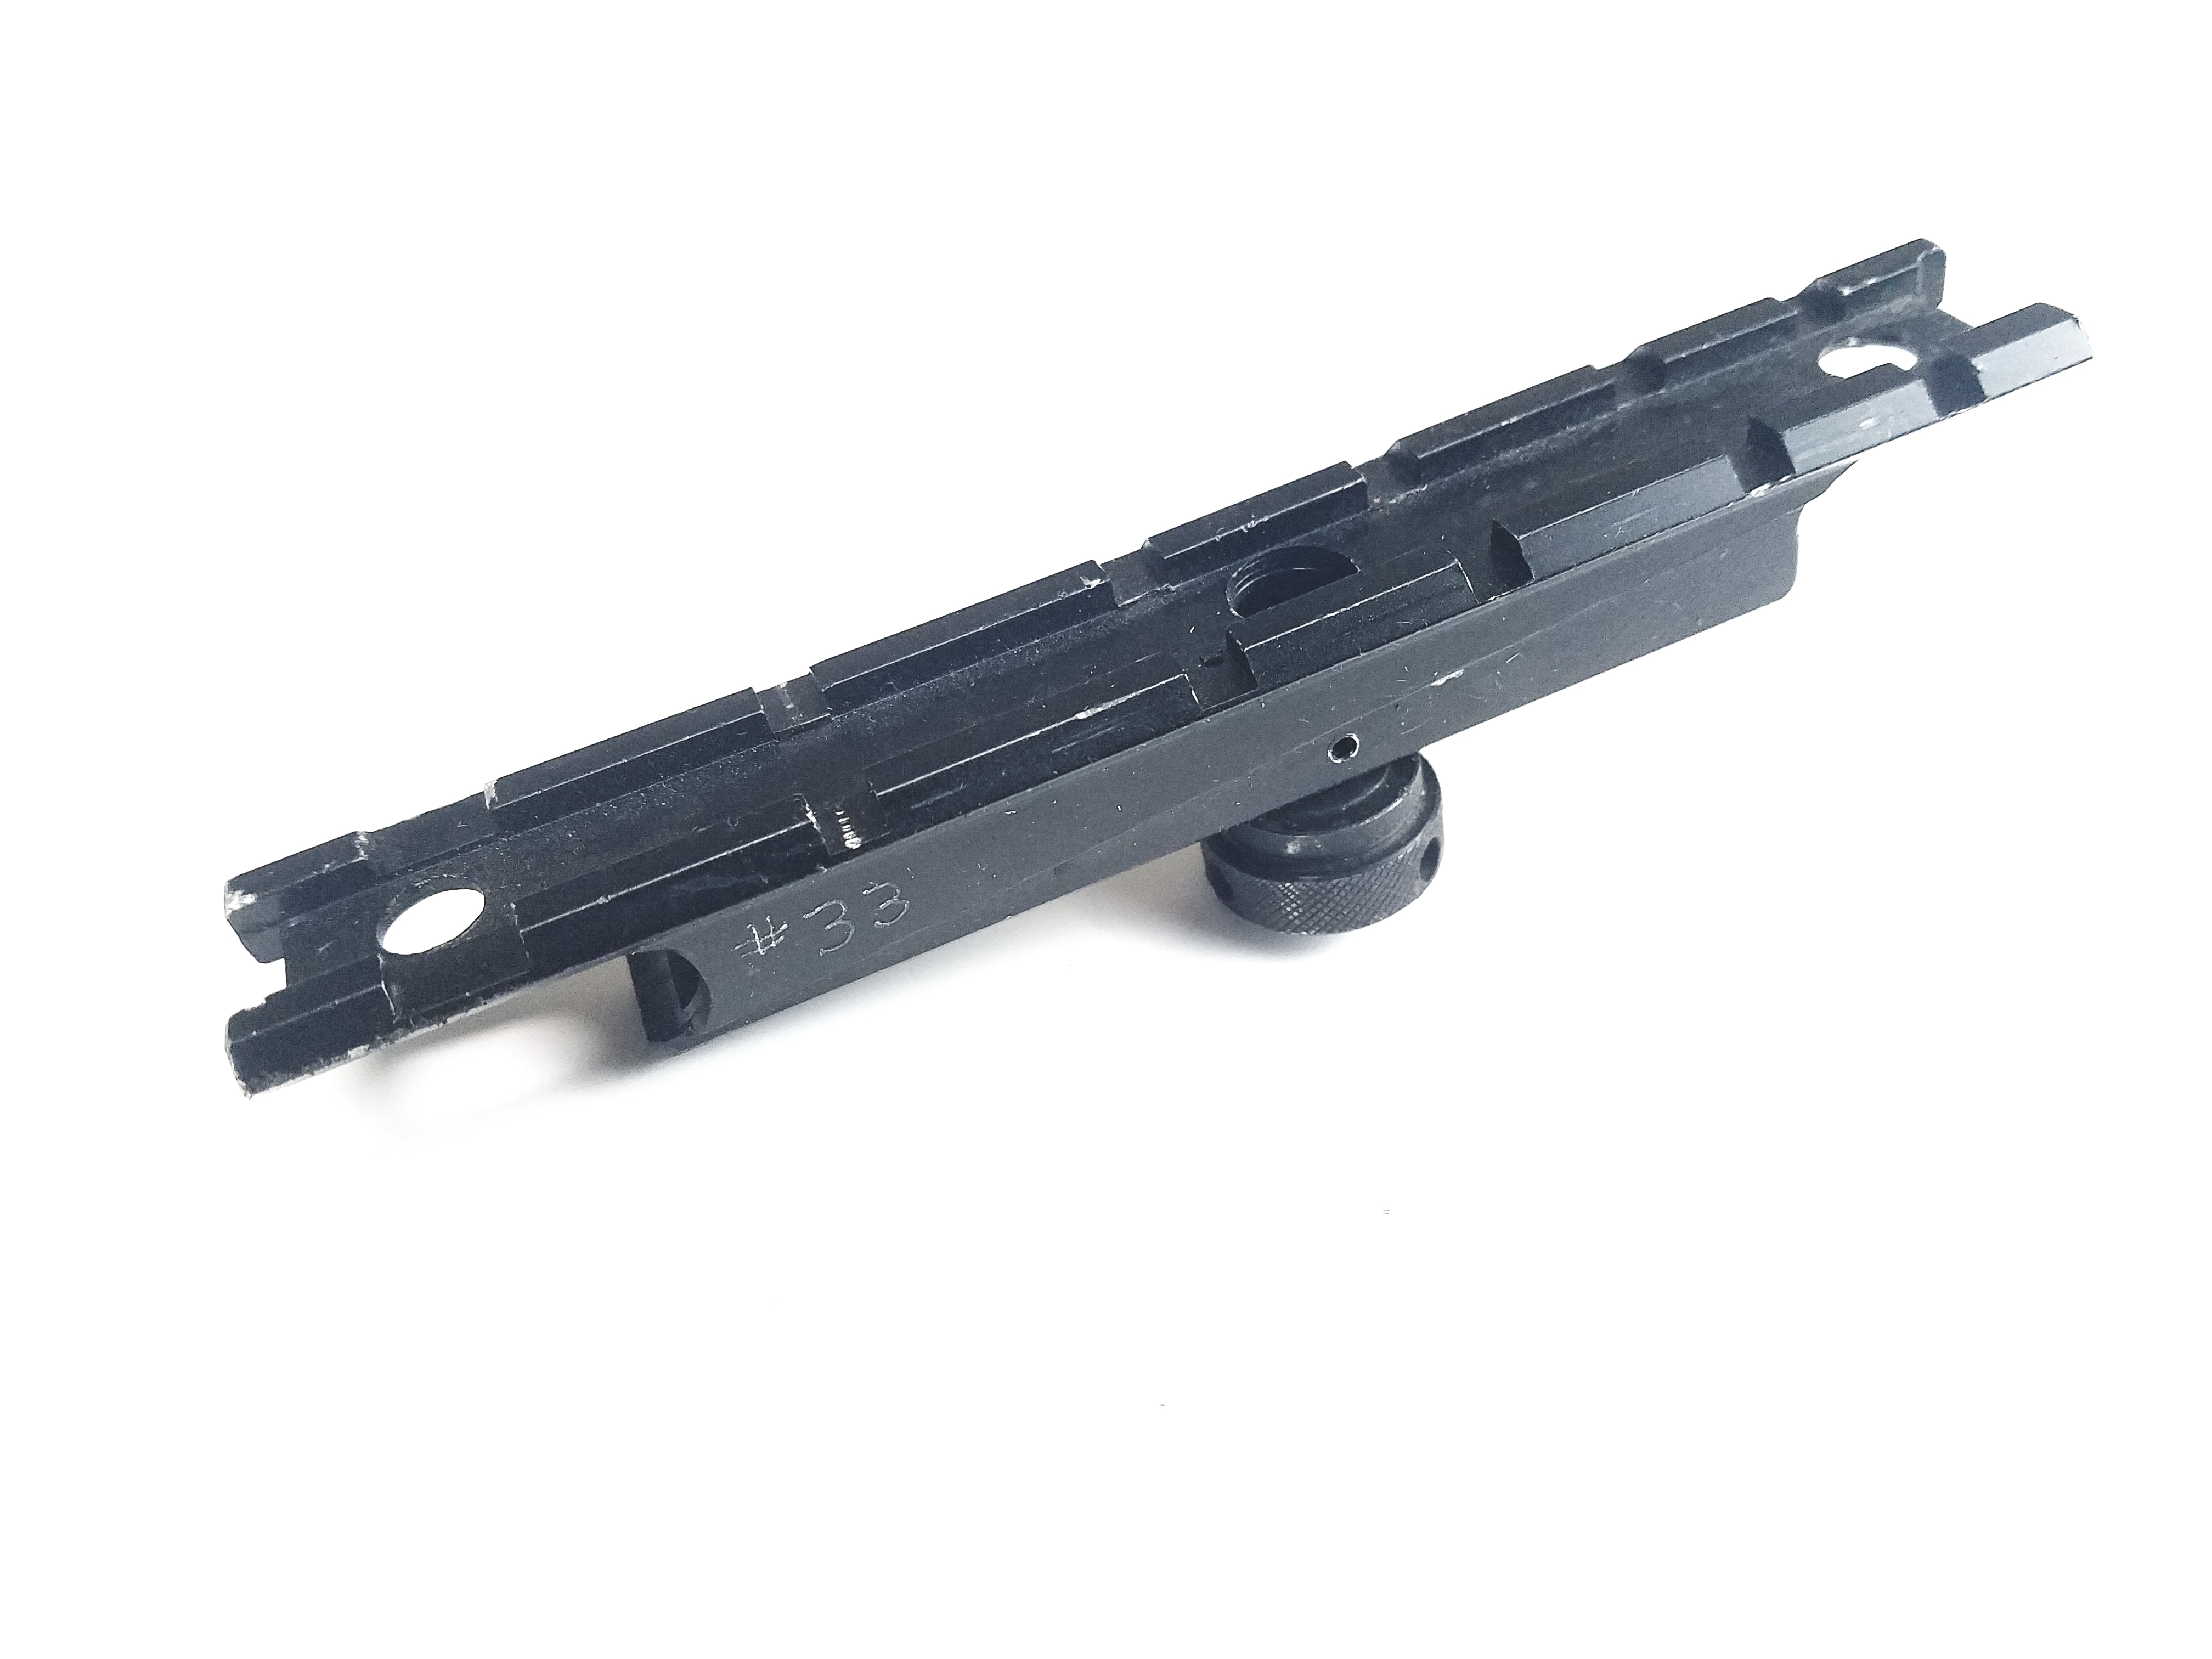 AR15 / M4 Carry Handle Mount - A